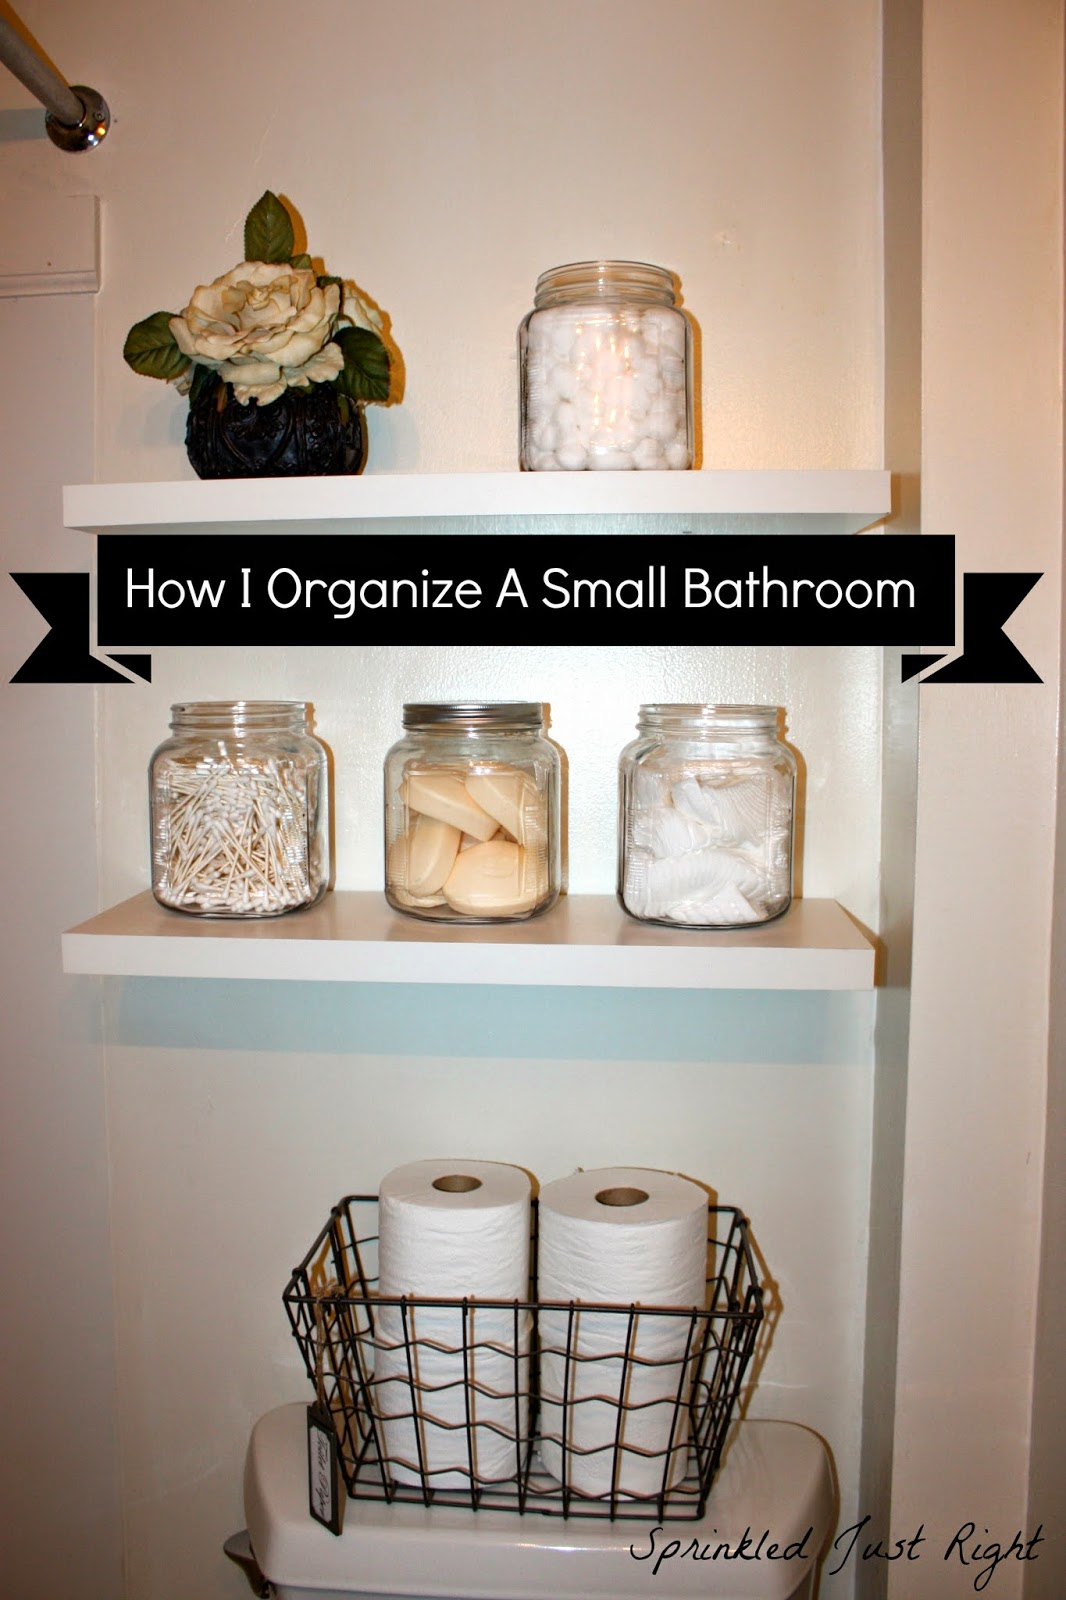 How To Organize A Bathroom Sprinkled Just Right How I Organize A Small Bathroom